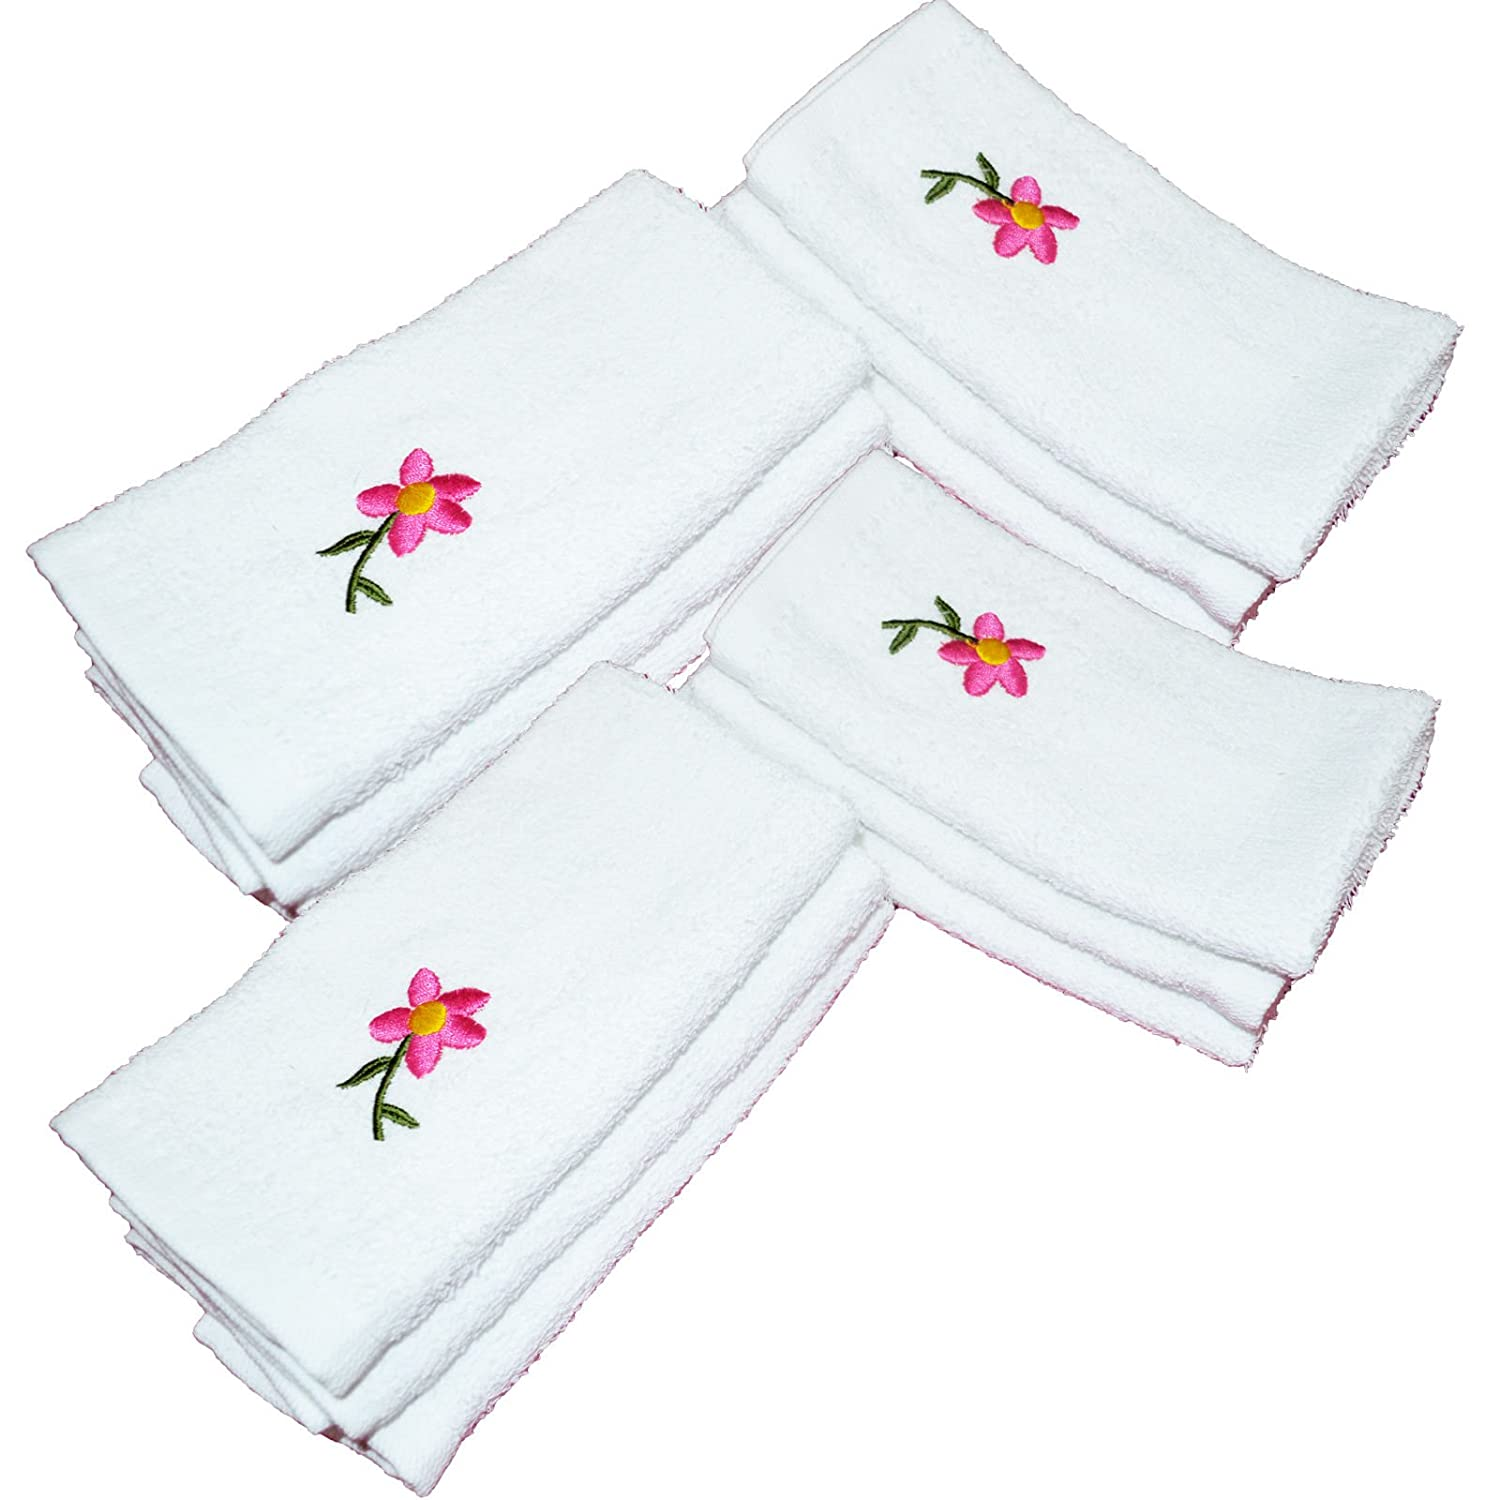 Amazon.com: Bath Towels Clearance Cotton Washcloths Hand Towels 1 ...